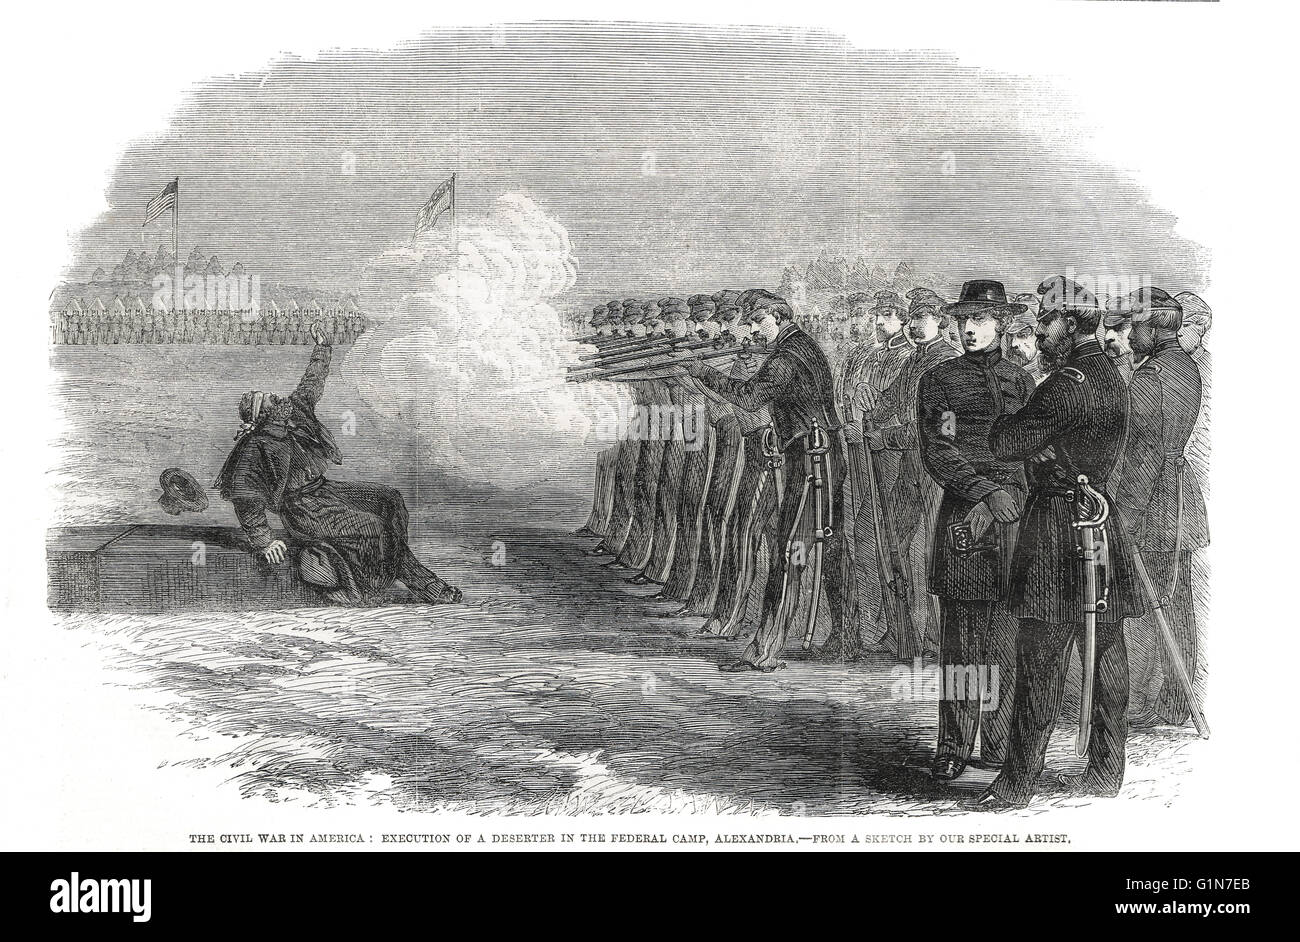 Execution of a deserter in The American Civil War, December 13, 1861 at Fairfax Seminary, Federal Camp, Alexandria - Stock Image